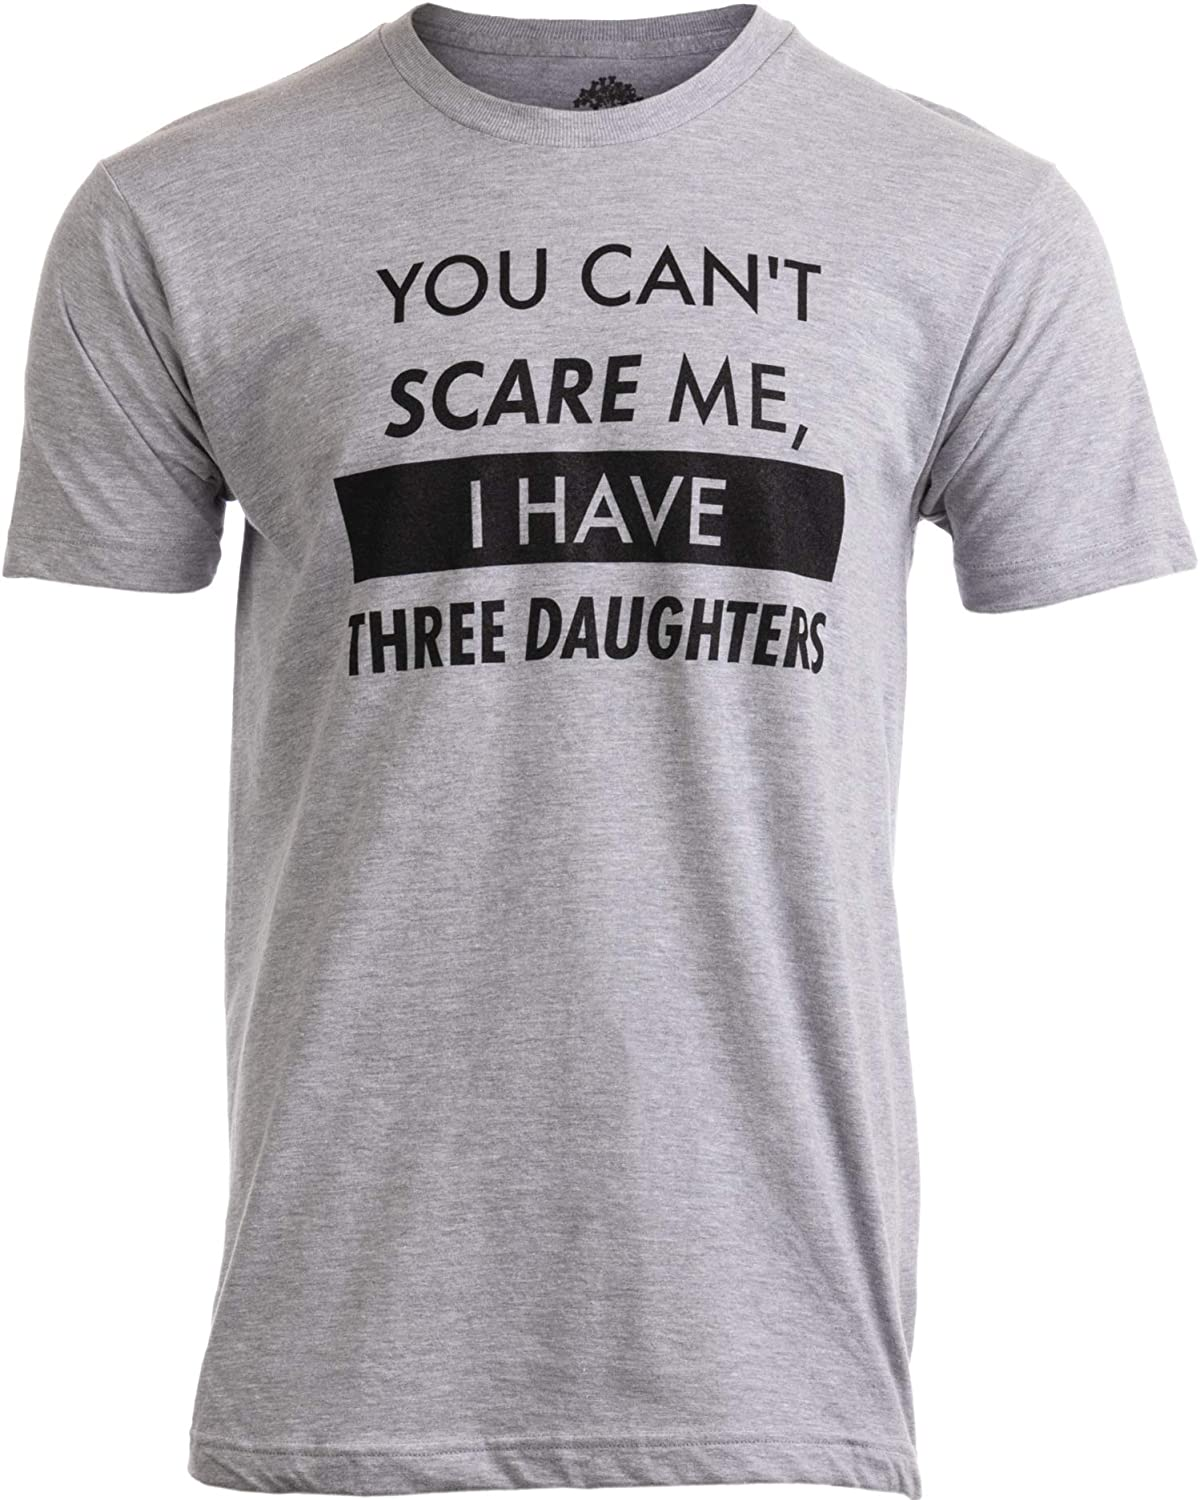 You Can't Scare Me, I Have Three Daughters | Funny Dad Daddy Joke Men T-Shirt: Clothing